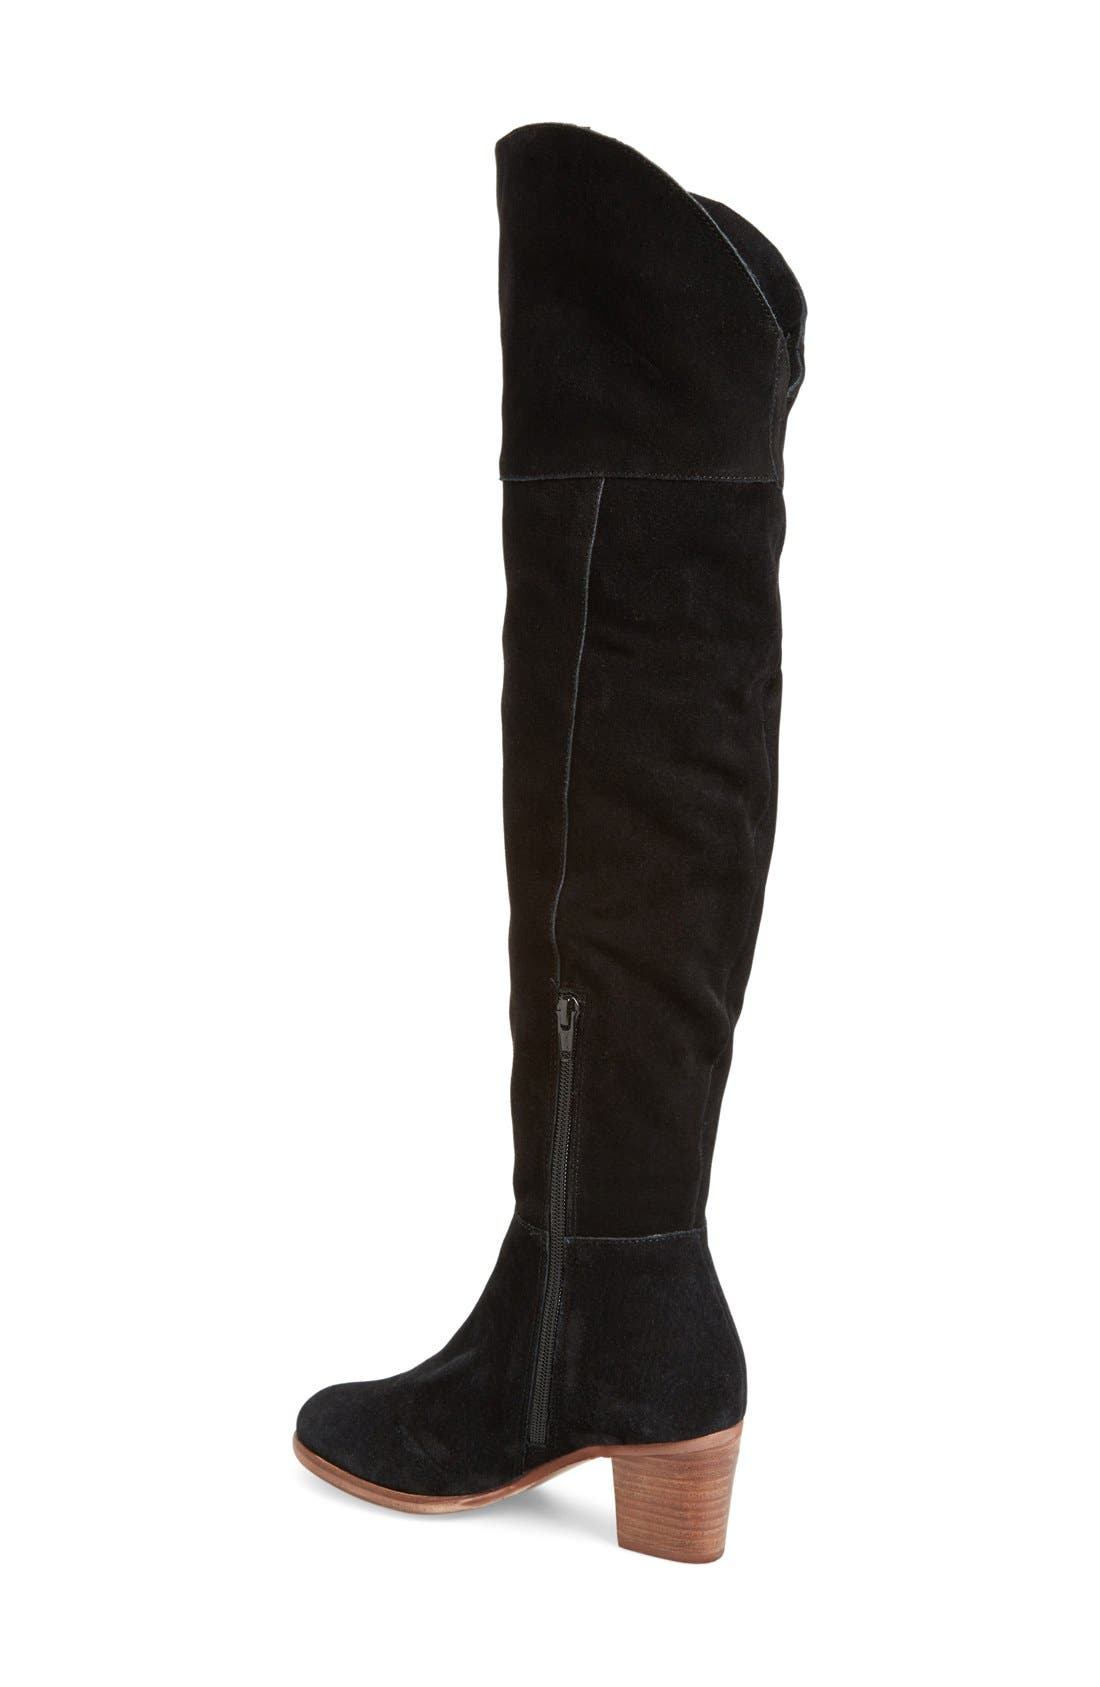 Alternate Image 2  - Matisse Muse Tall Boot (Women) (Narrow Calf)